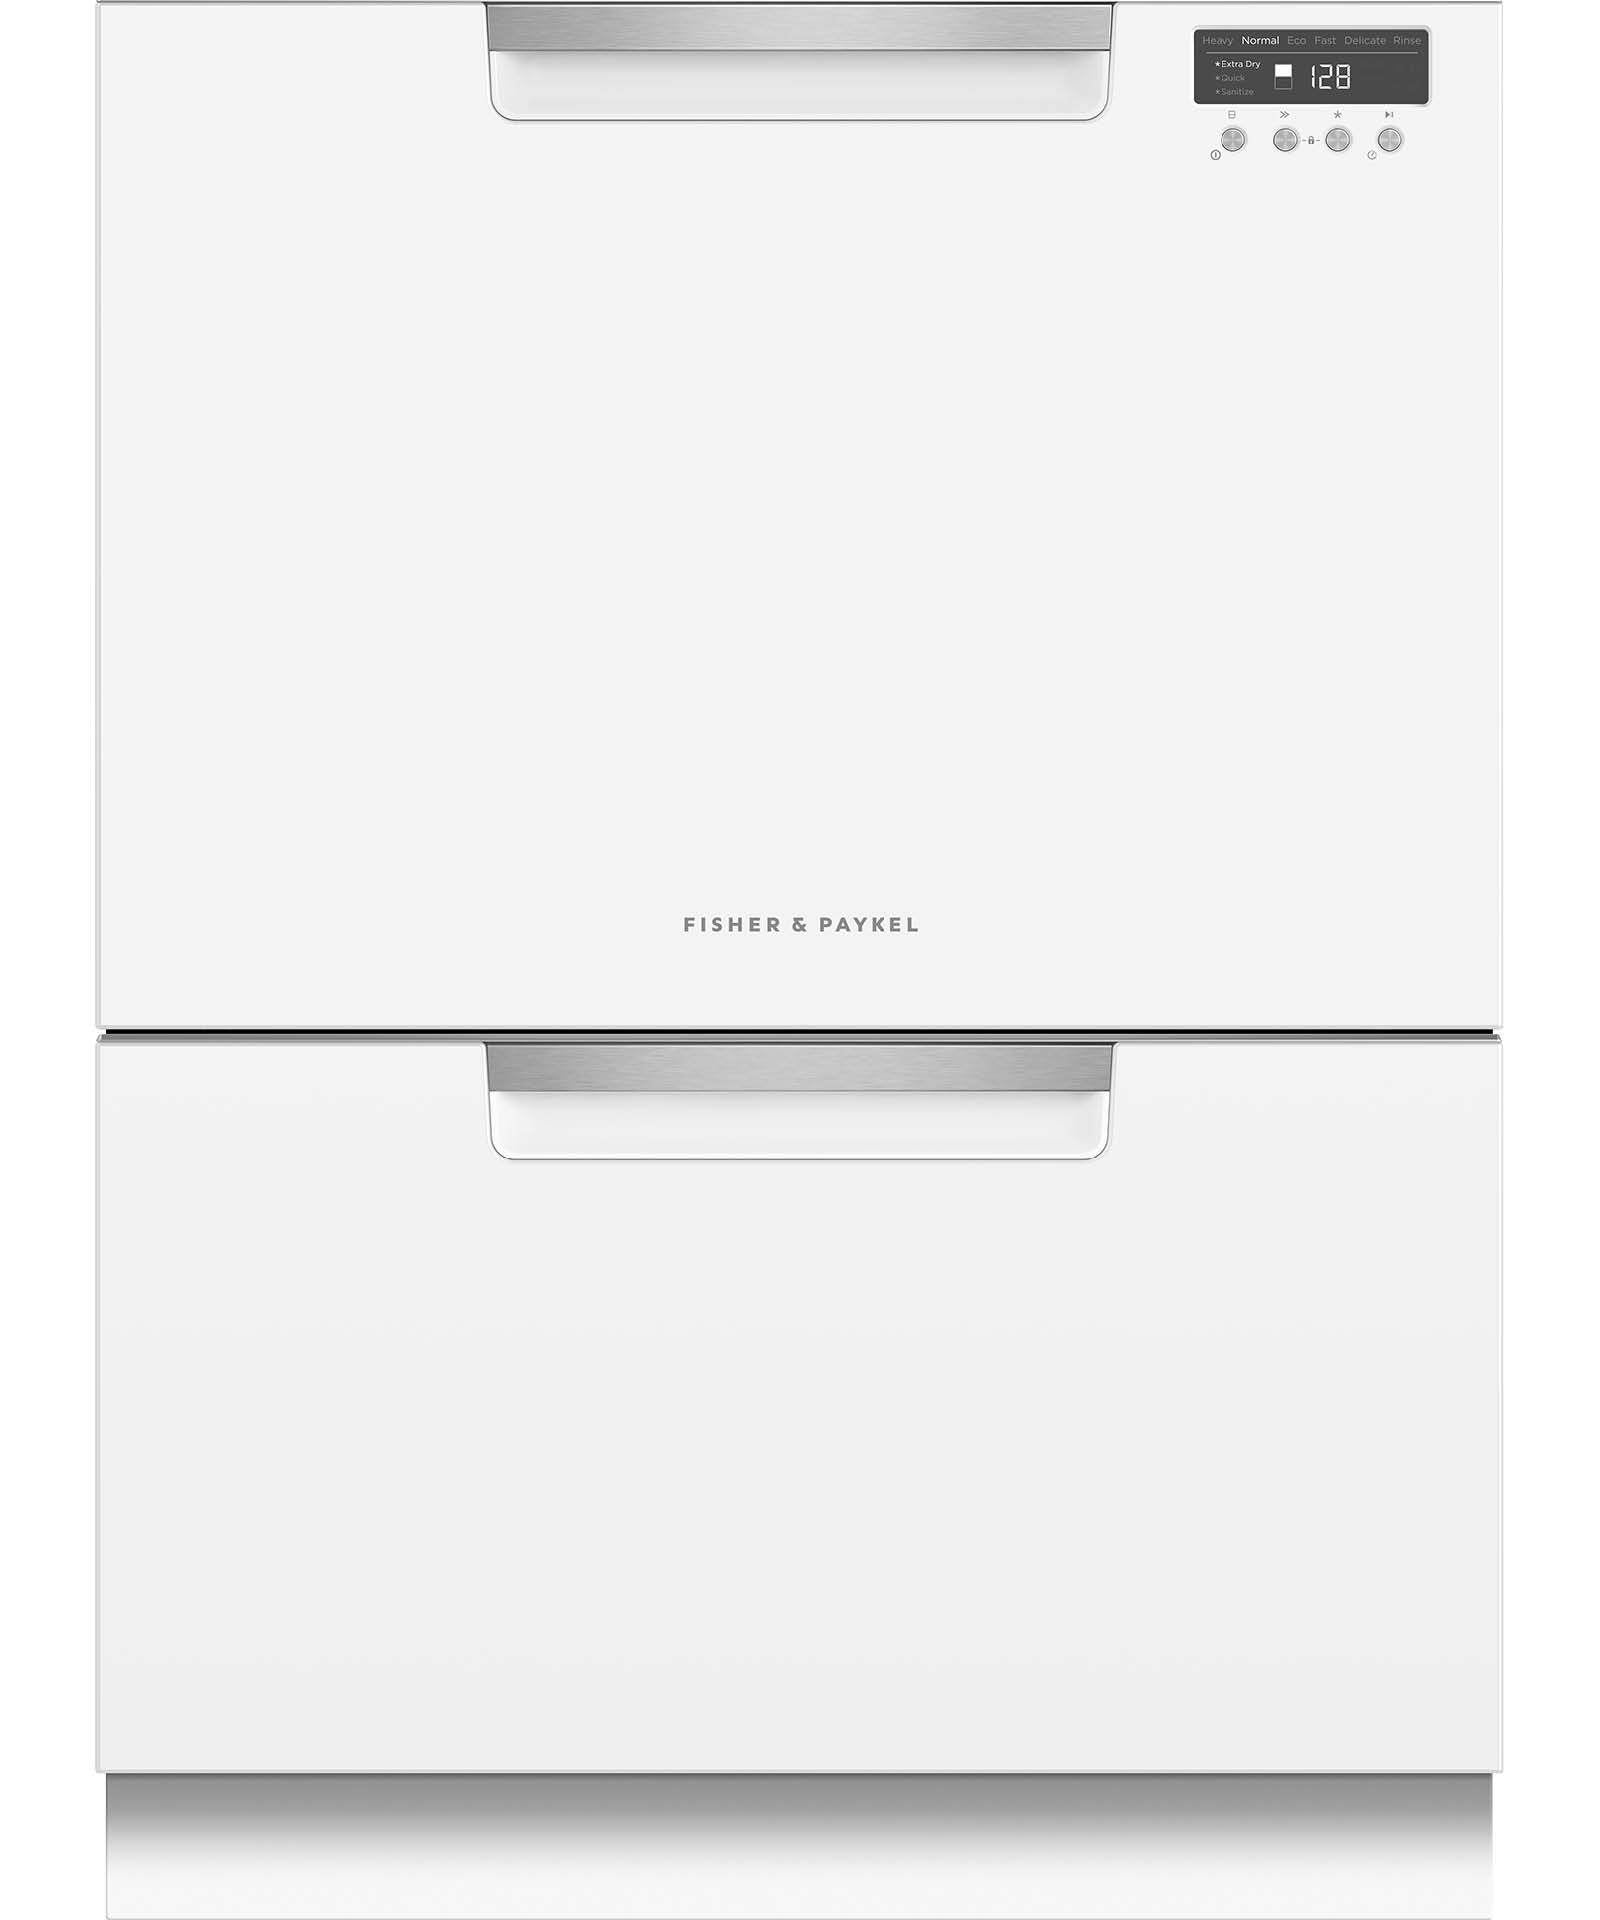 DD24DCTW9_N - Tall Double DishDrawer™ Dishwasher incl Sanitize, Extra Dry and full flex racking - 81597